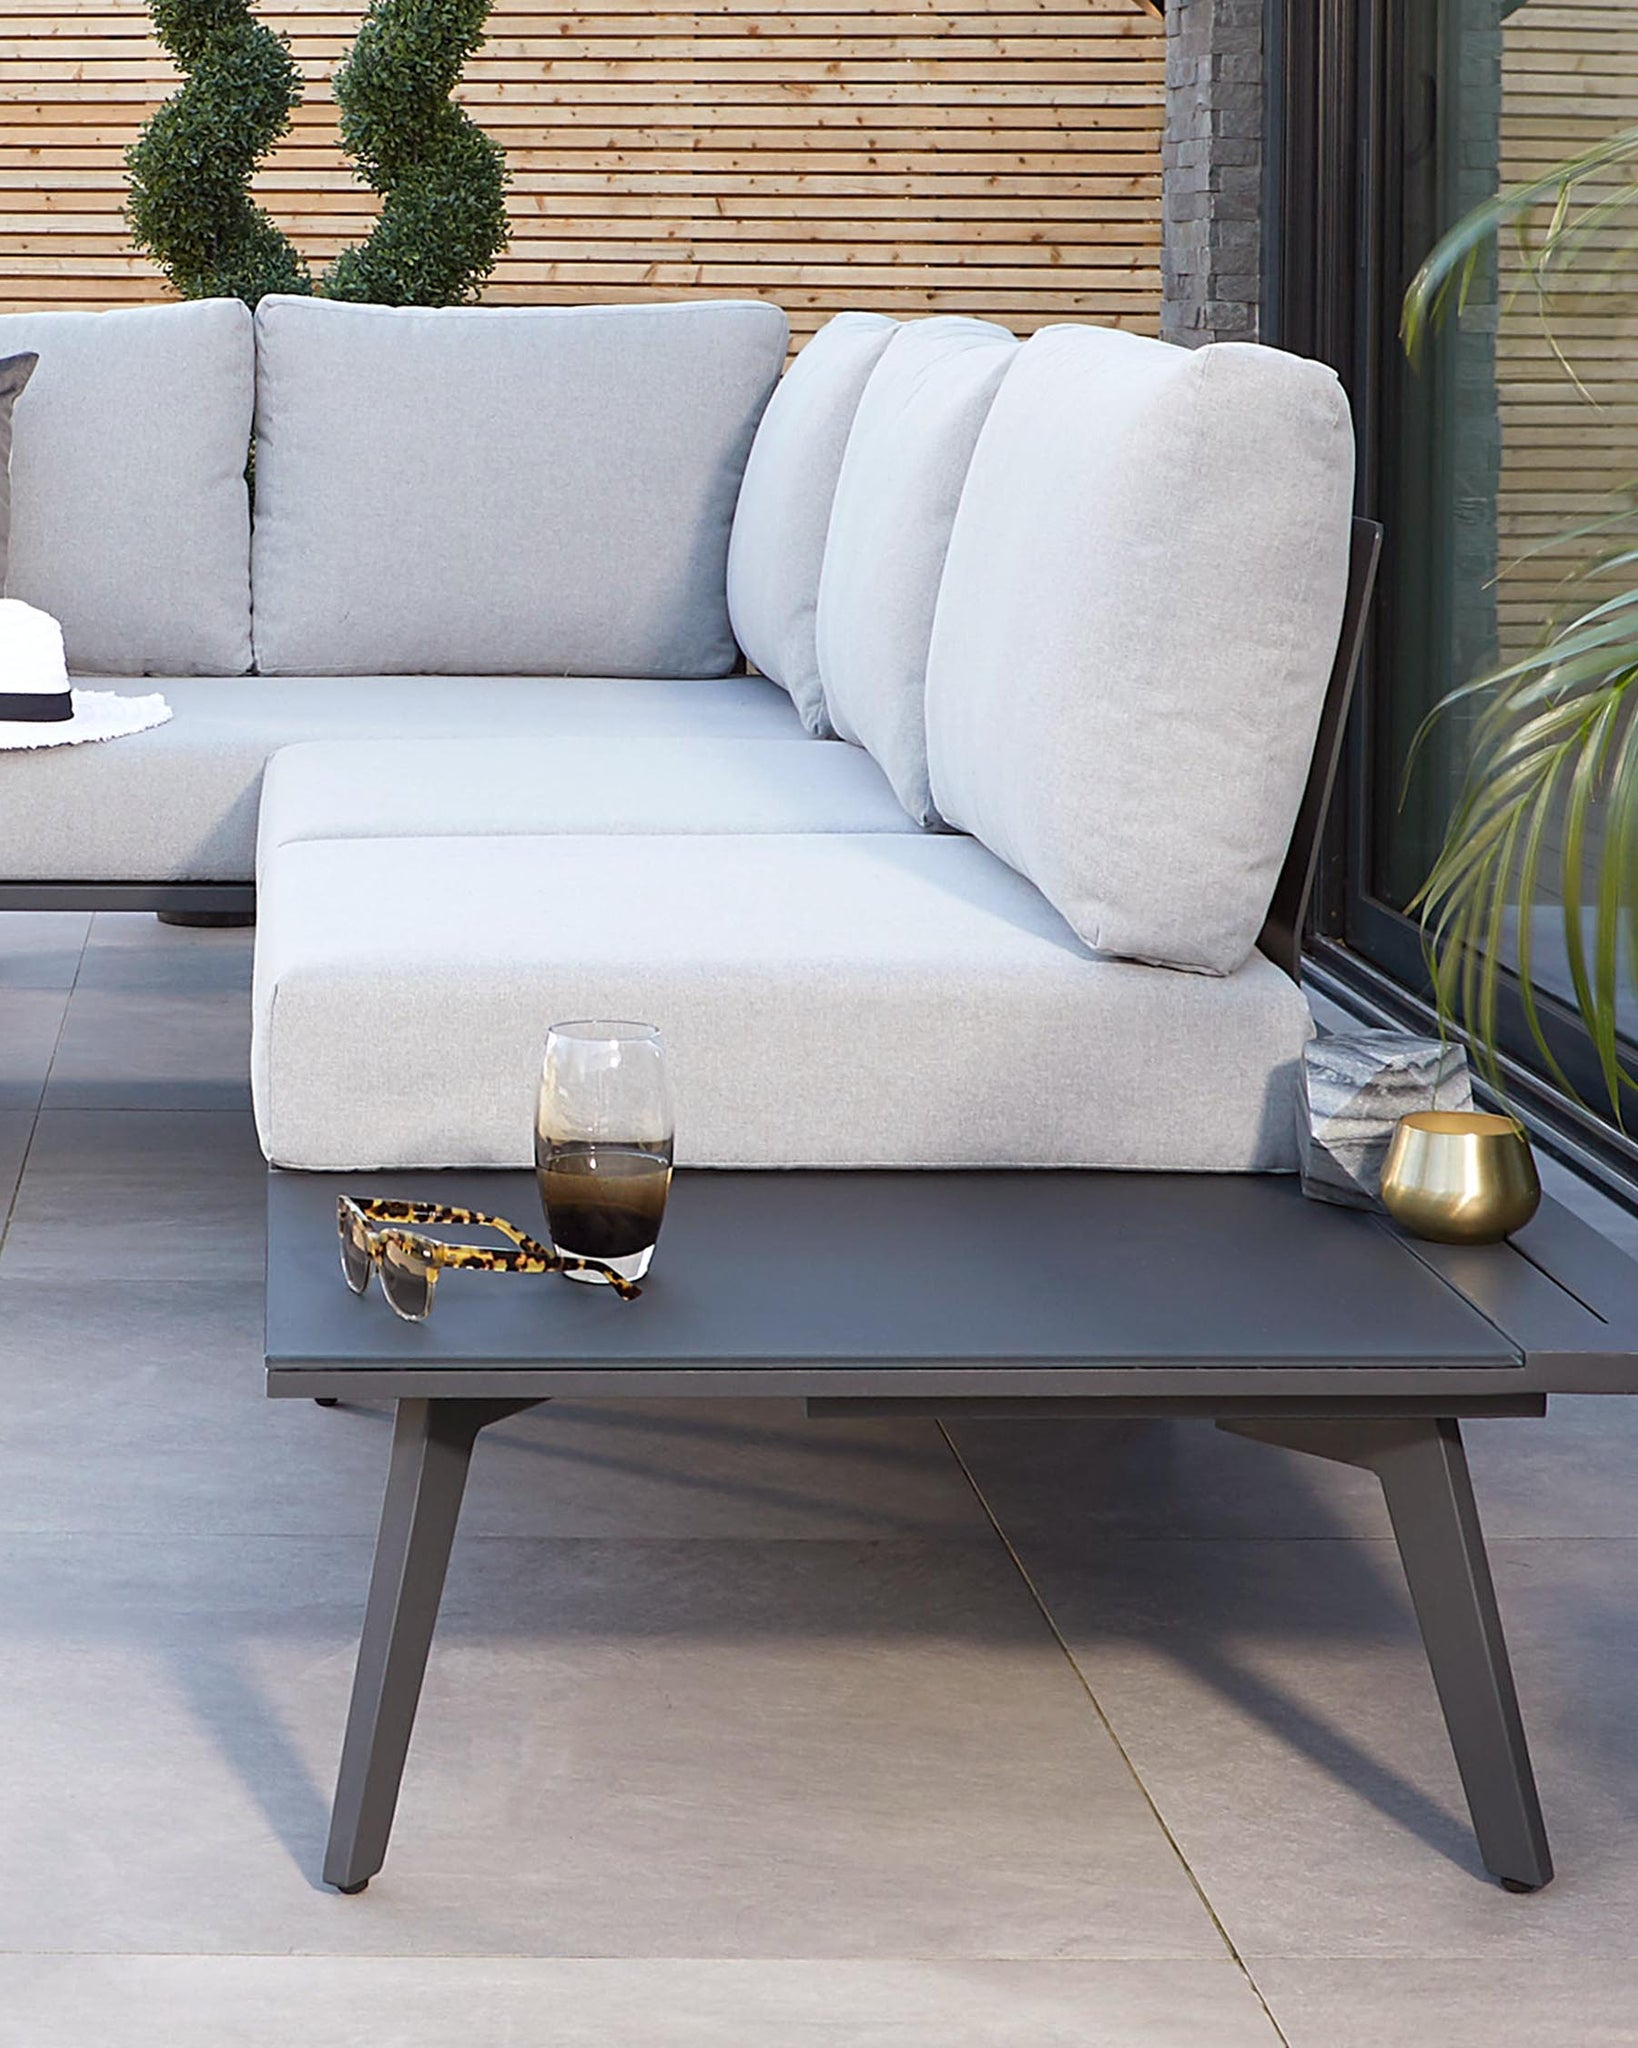 Palermo Grey Dining Table with Bali Corner Bench Set